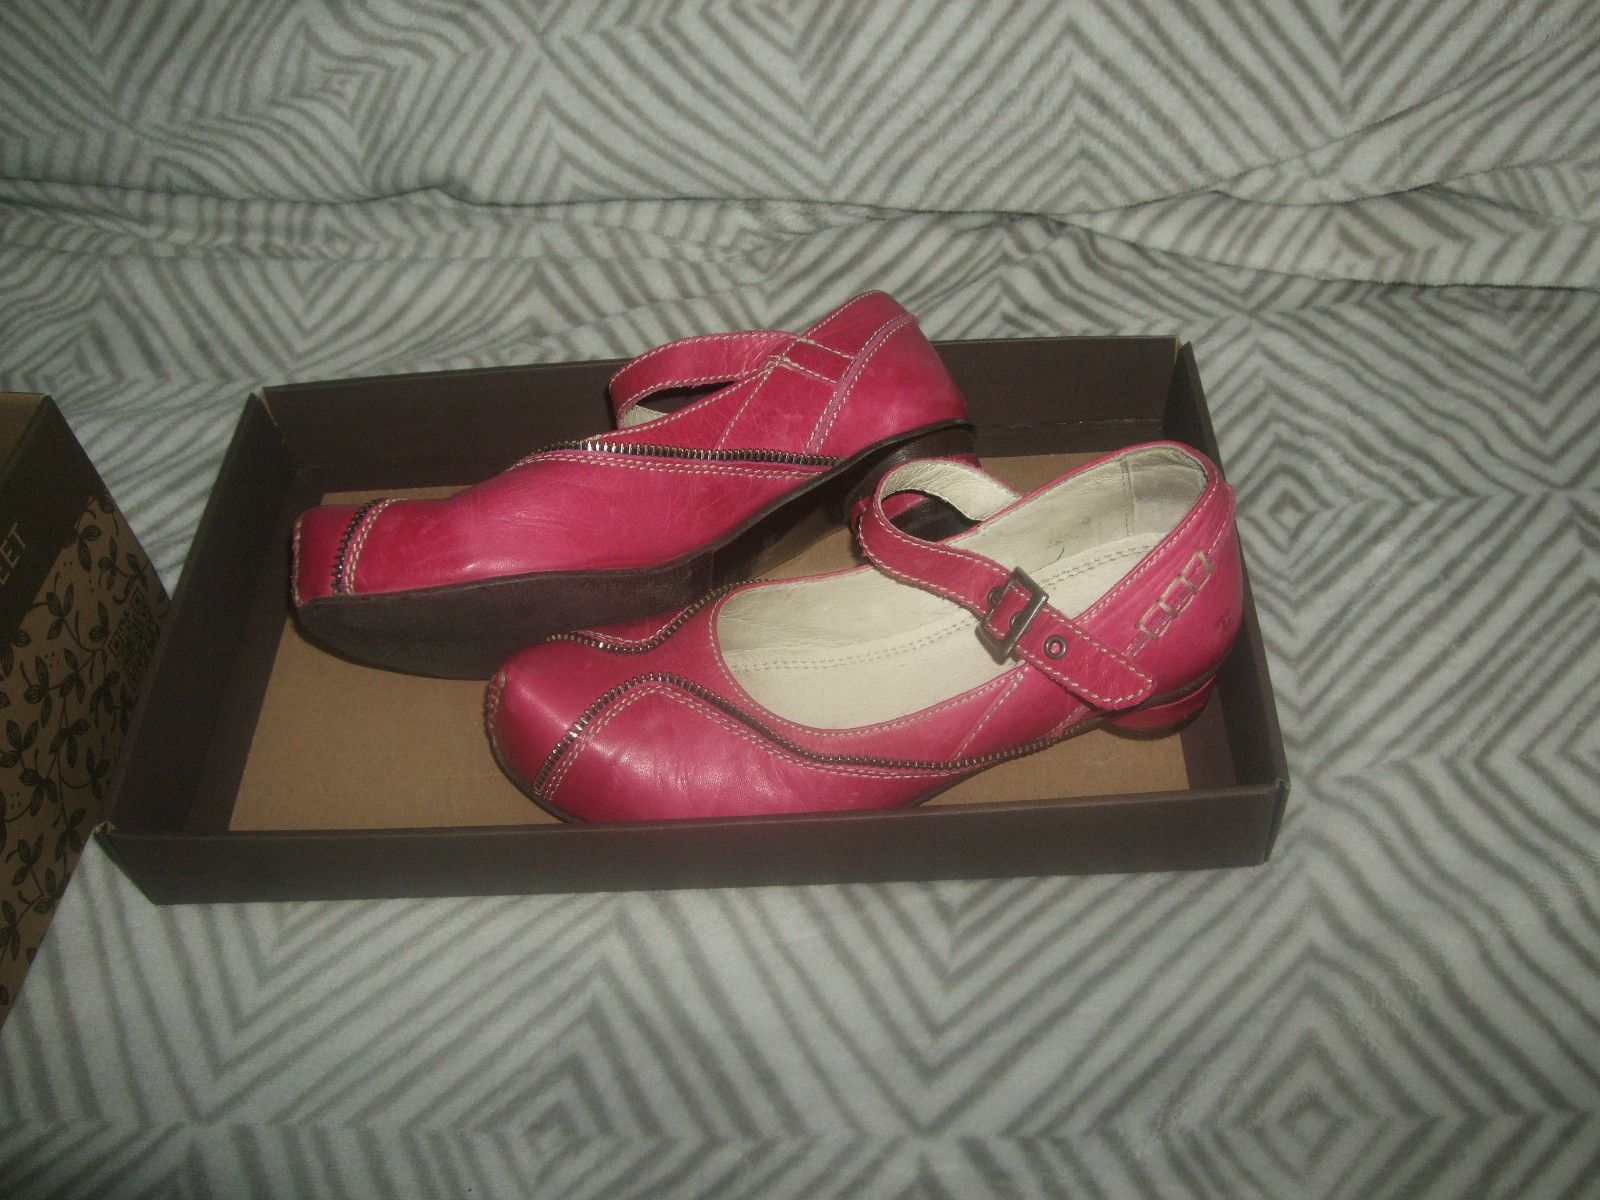 Tiggers Schuh Gr 36 rosa pink in Kleidung & Accessoires